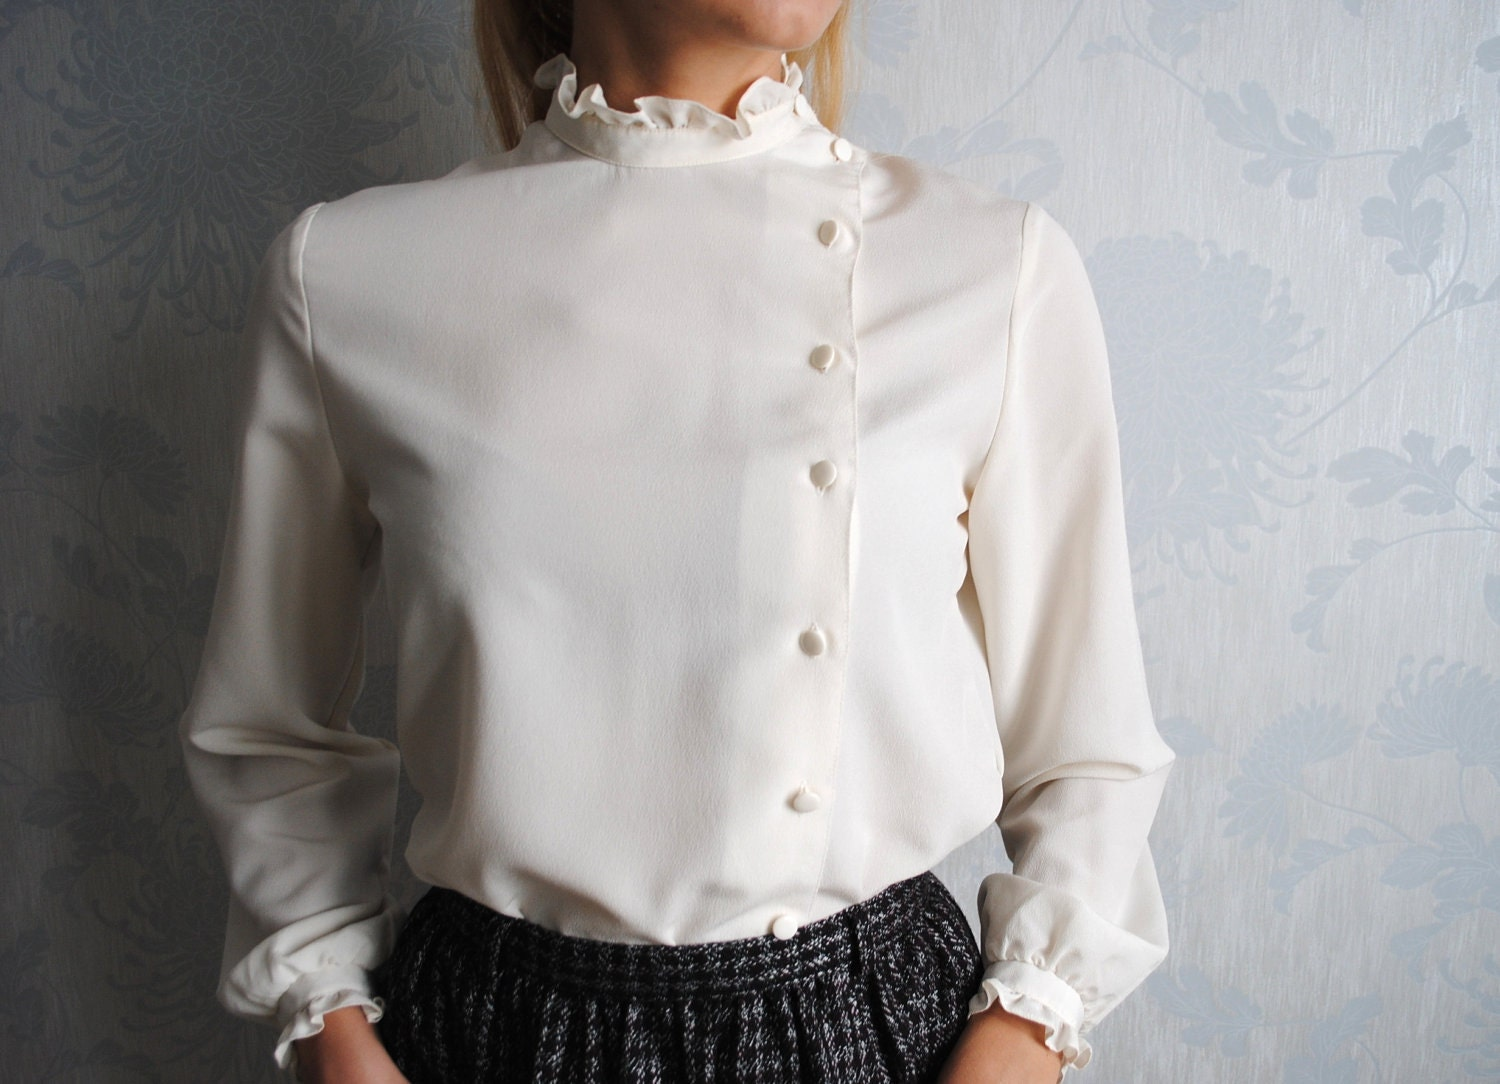 White High Collar Blouse - Tie Blouse